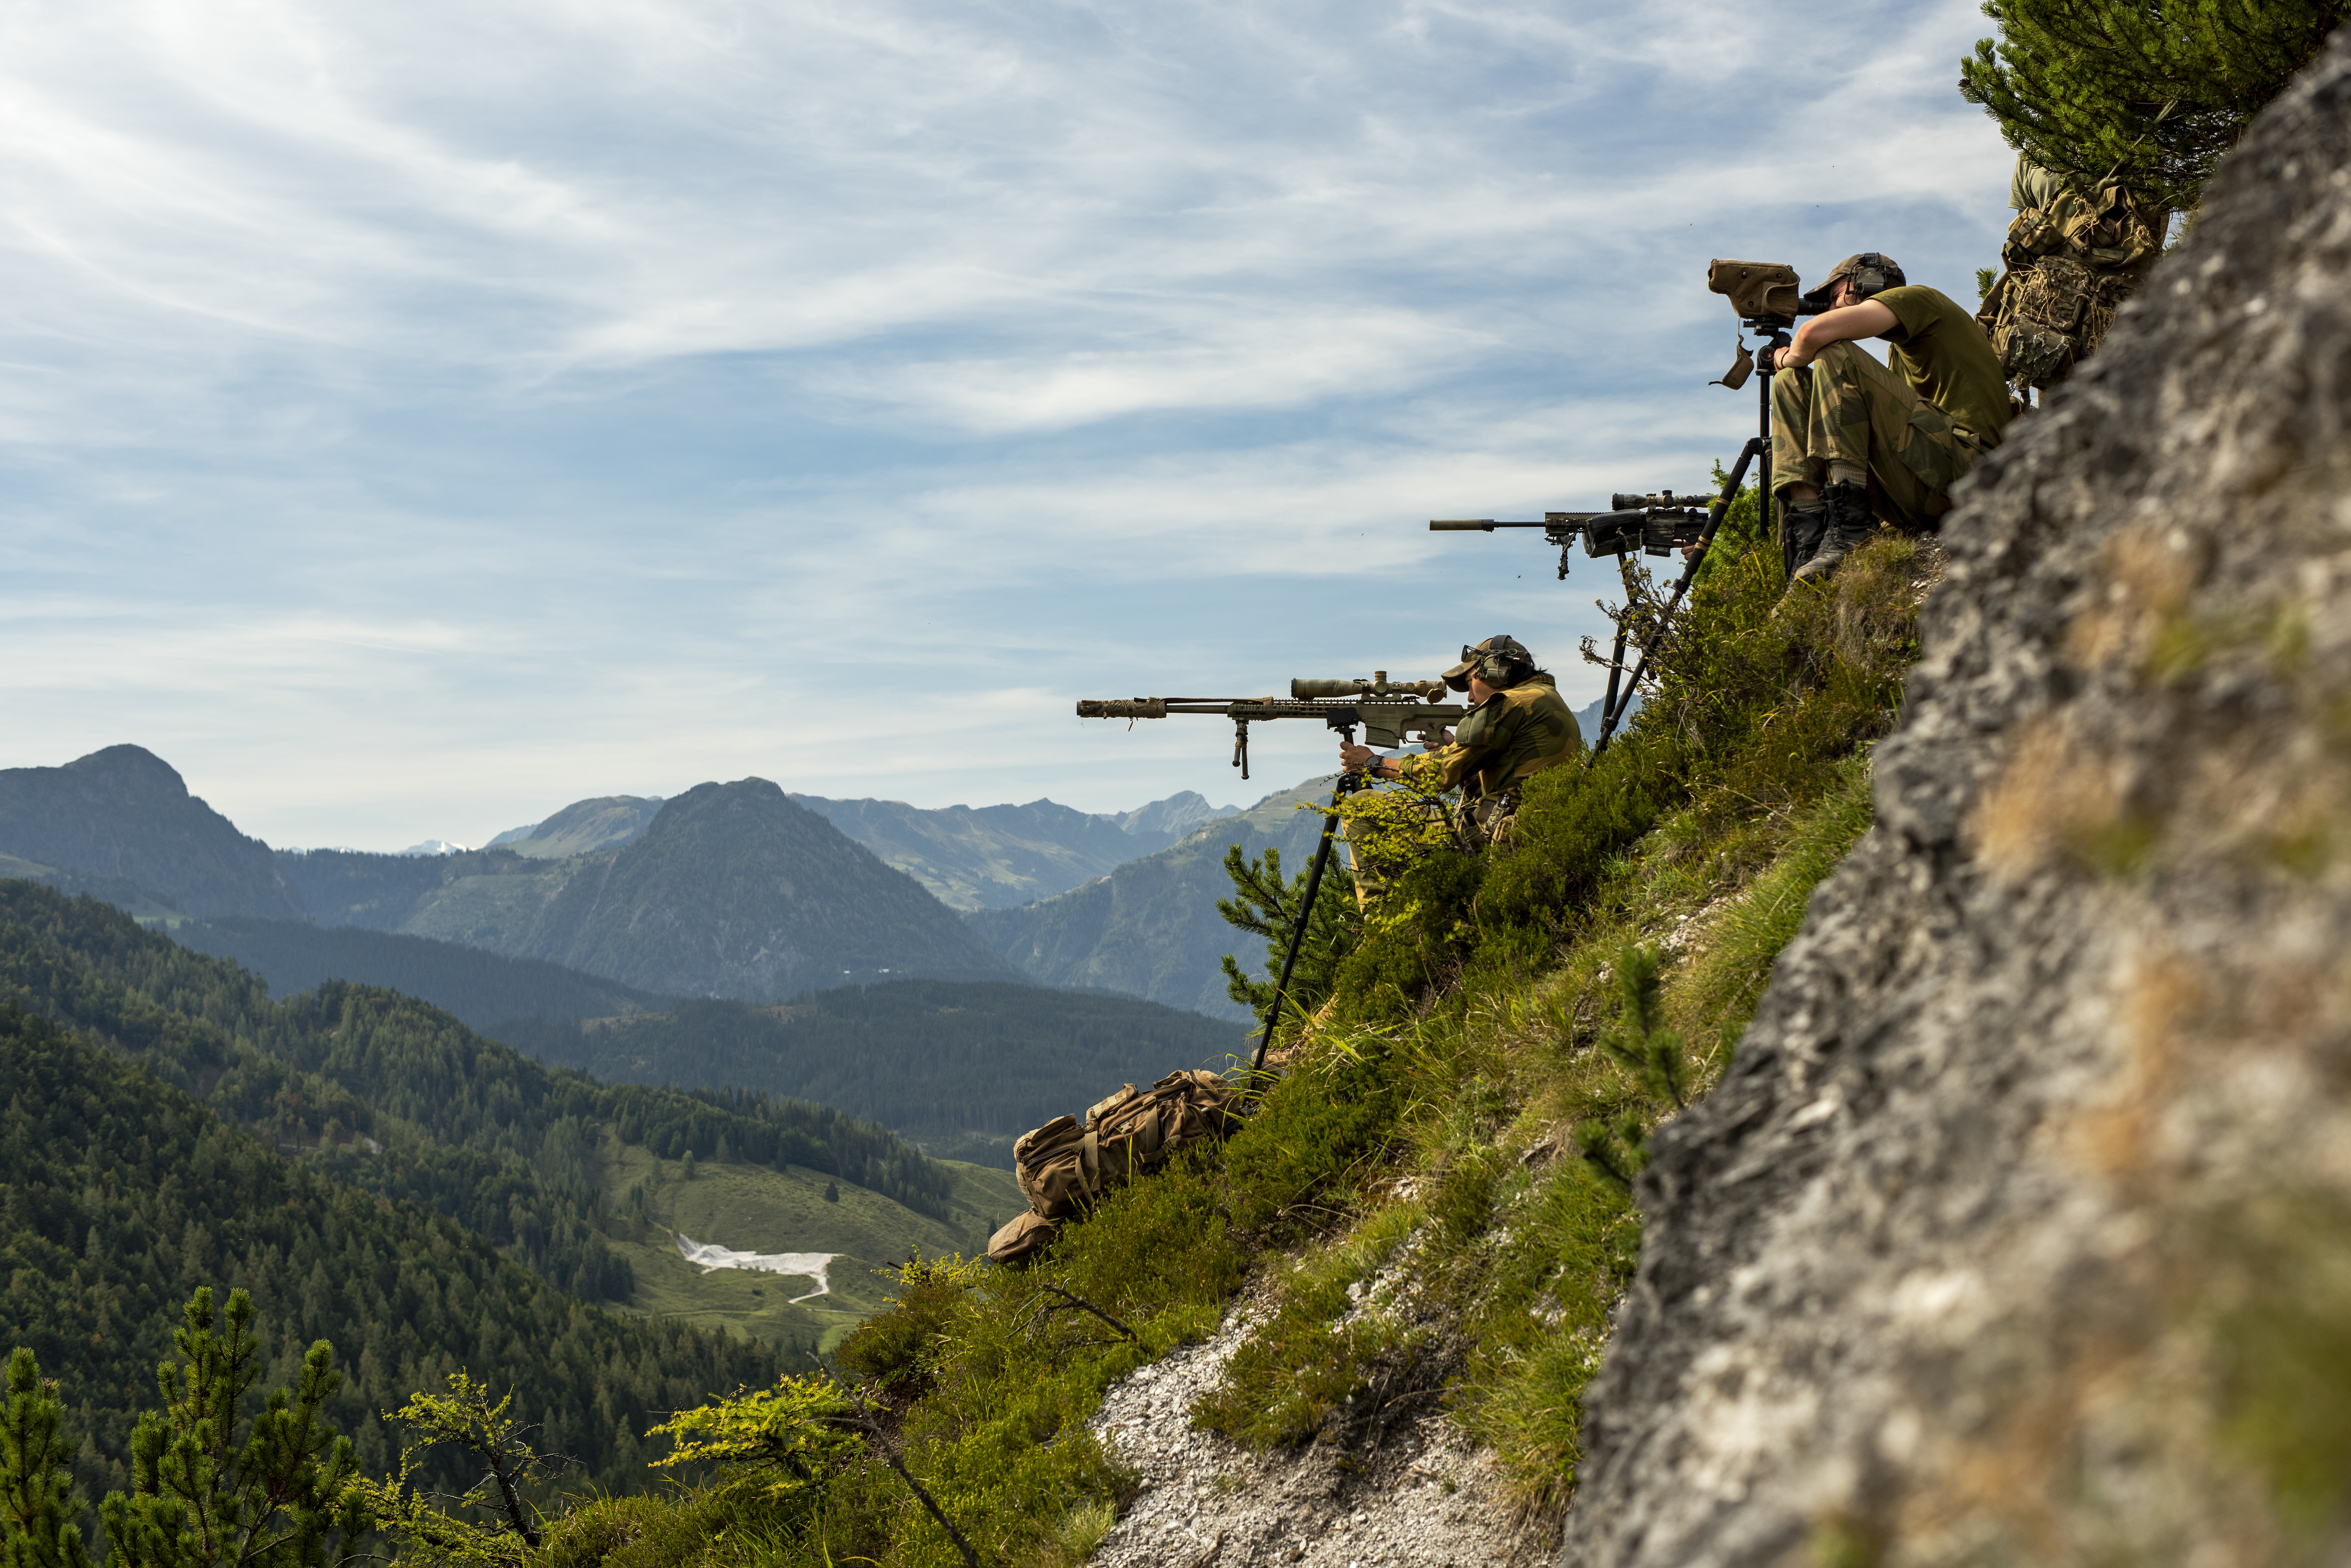 A Norwegian Army Telemark Battalion sniper team takes aim at targets across a valley on Sept. 11, 2018 during the International Special Training Centre High-Angle/Urban Course at the Hochfilzen Training Area, Austria. The high-angle portion of the two-week course is designed to teach trained sniper teams the necessary skills operating in mountainous terrain. (U.S. Army photo by 1st Lt. Benjamin Haulenbeek)